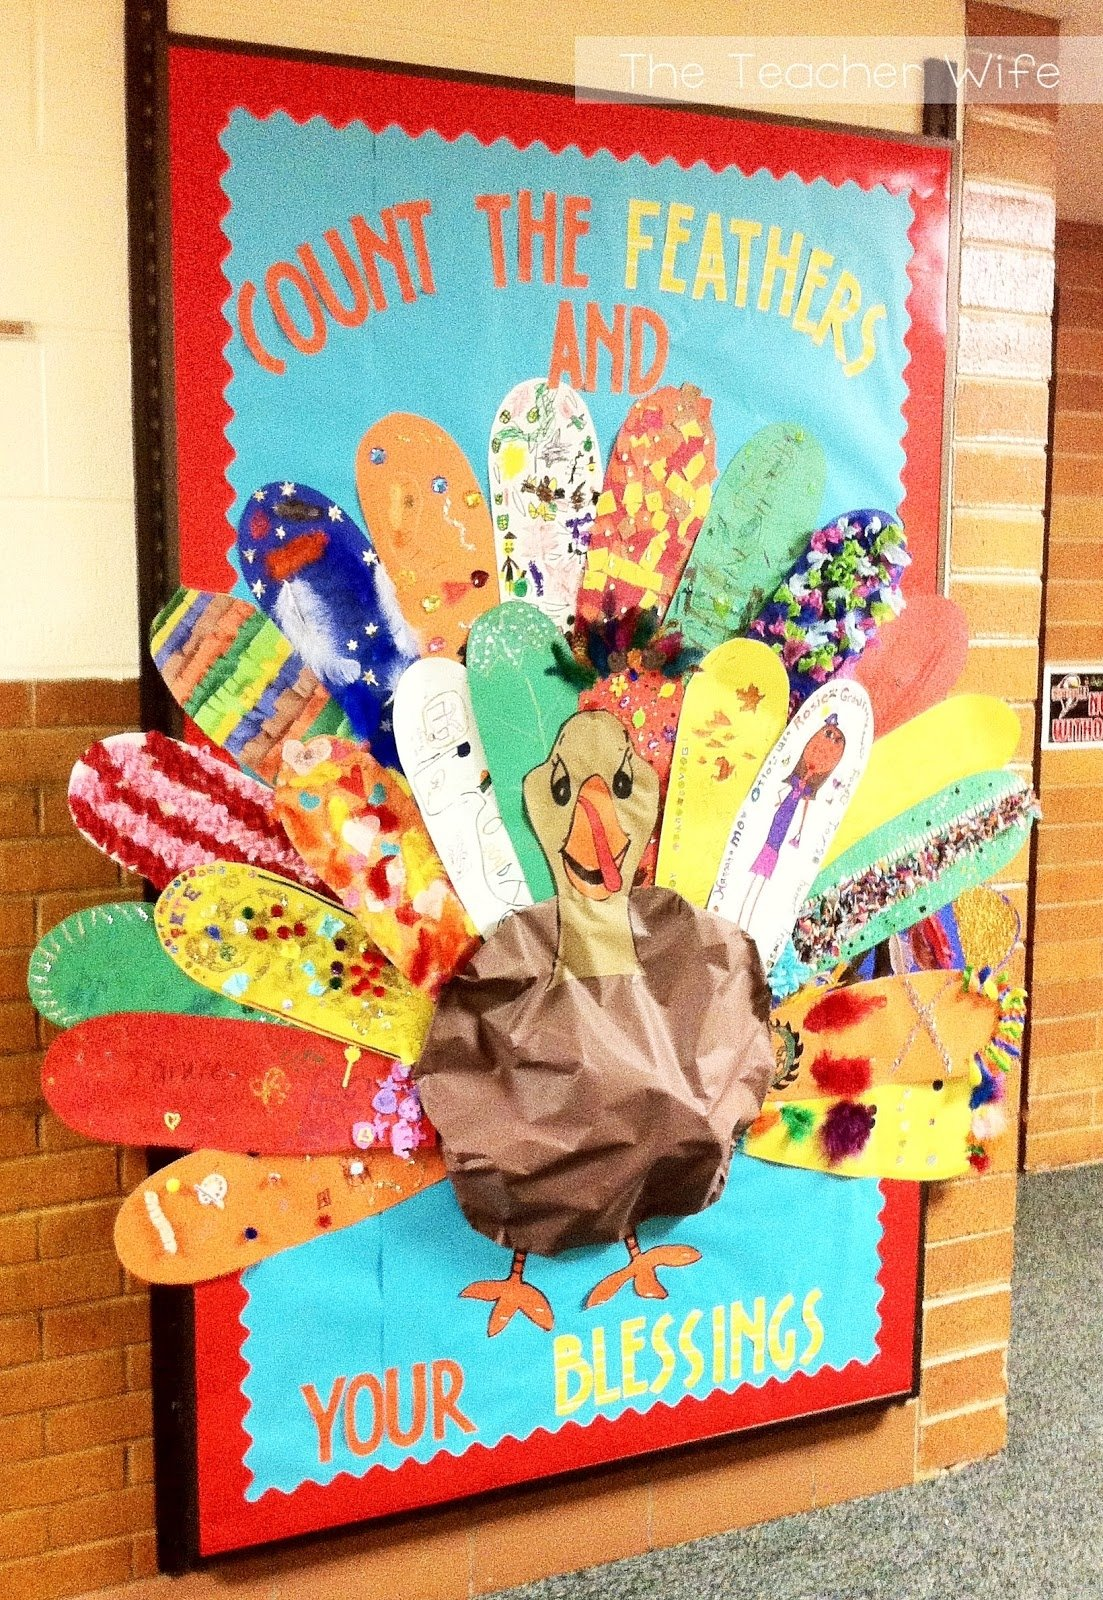 10 Nice Bulletin Board Ideas For Thanksgiving the teacher wife thanksgiving bulletin board